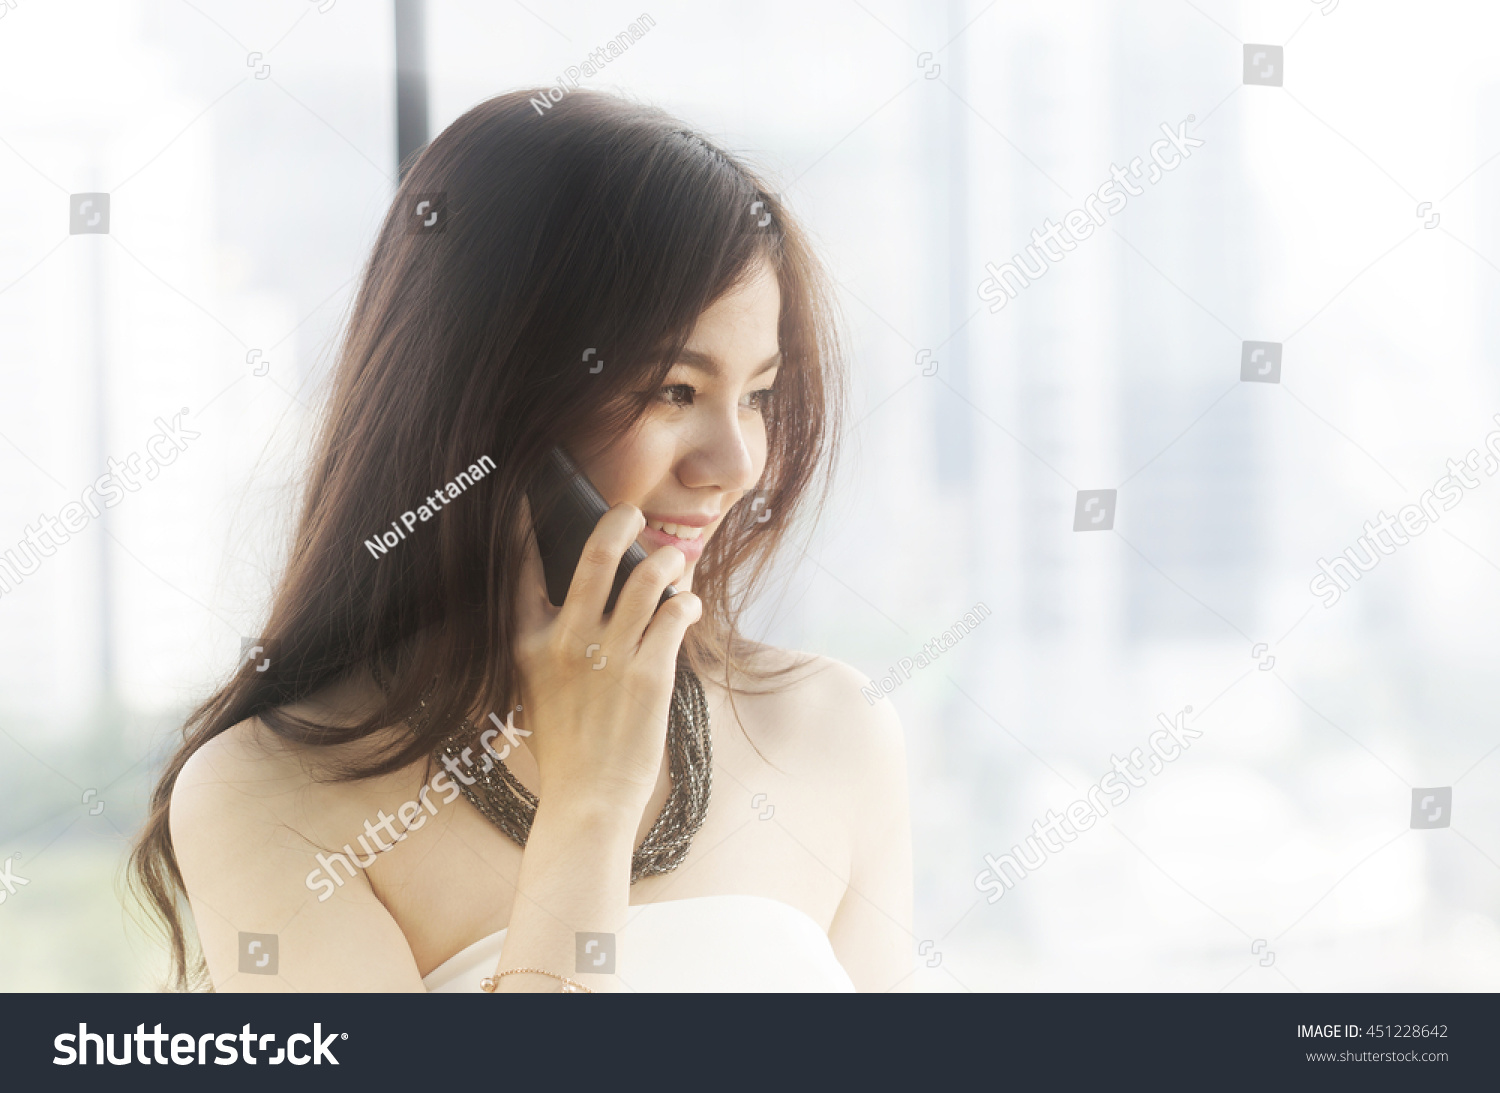 Asian woman talk on a cell phone ,bright background #451228642